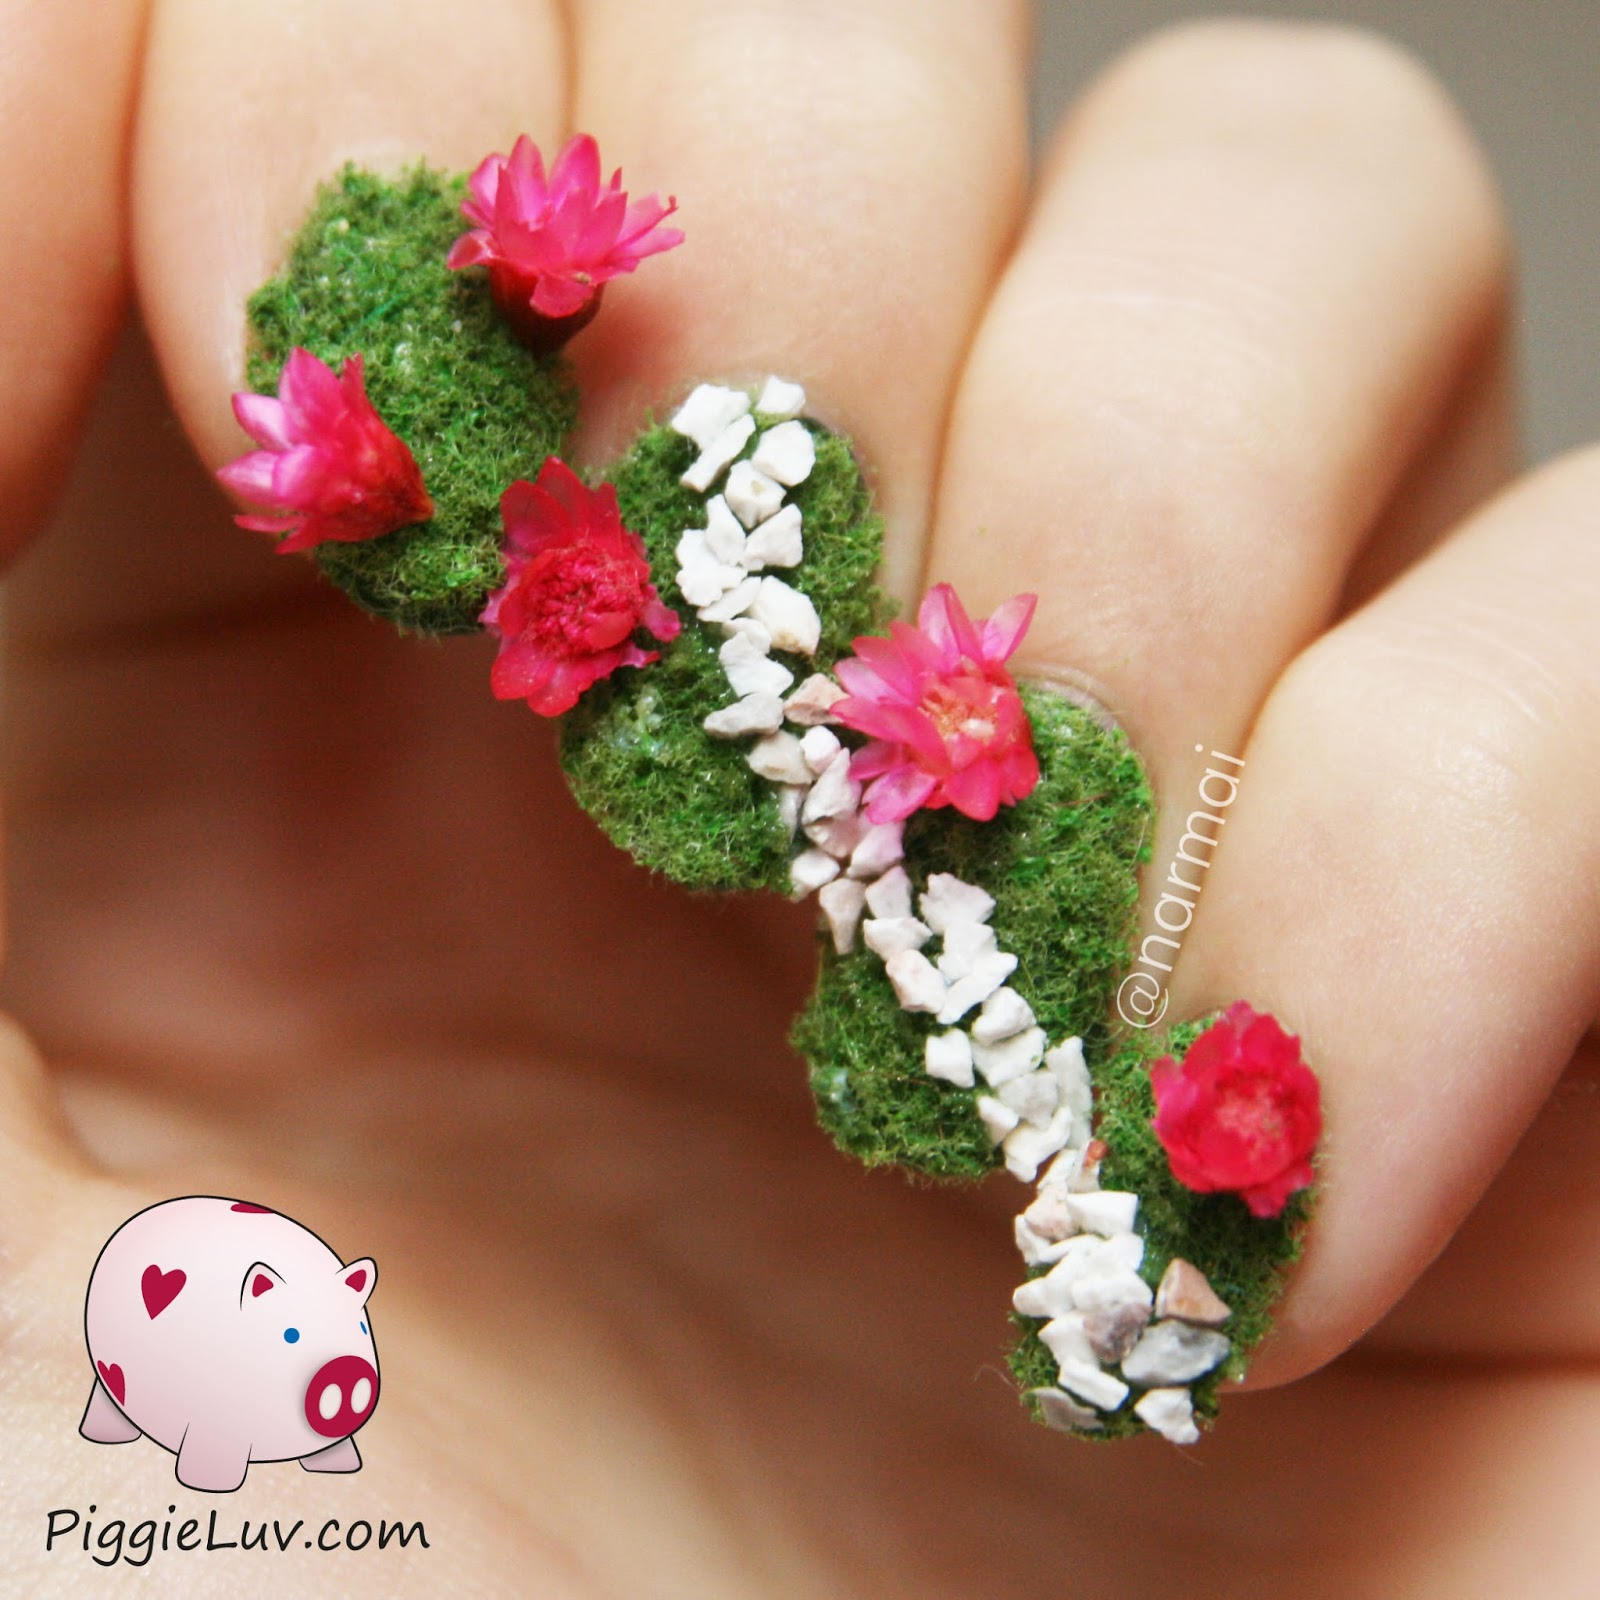 Piggieluv Secret Garden Nail Art Plus Video Tutorial